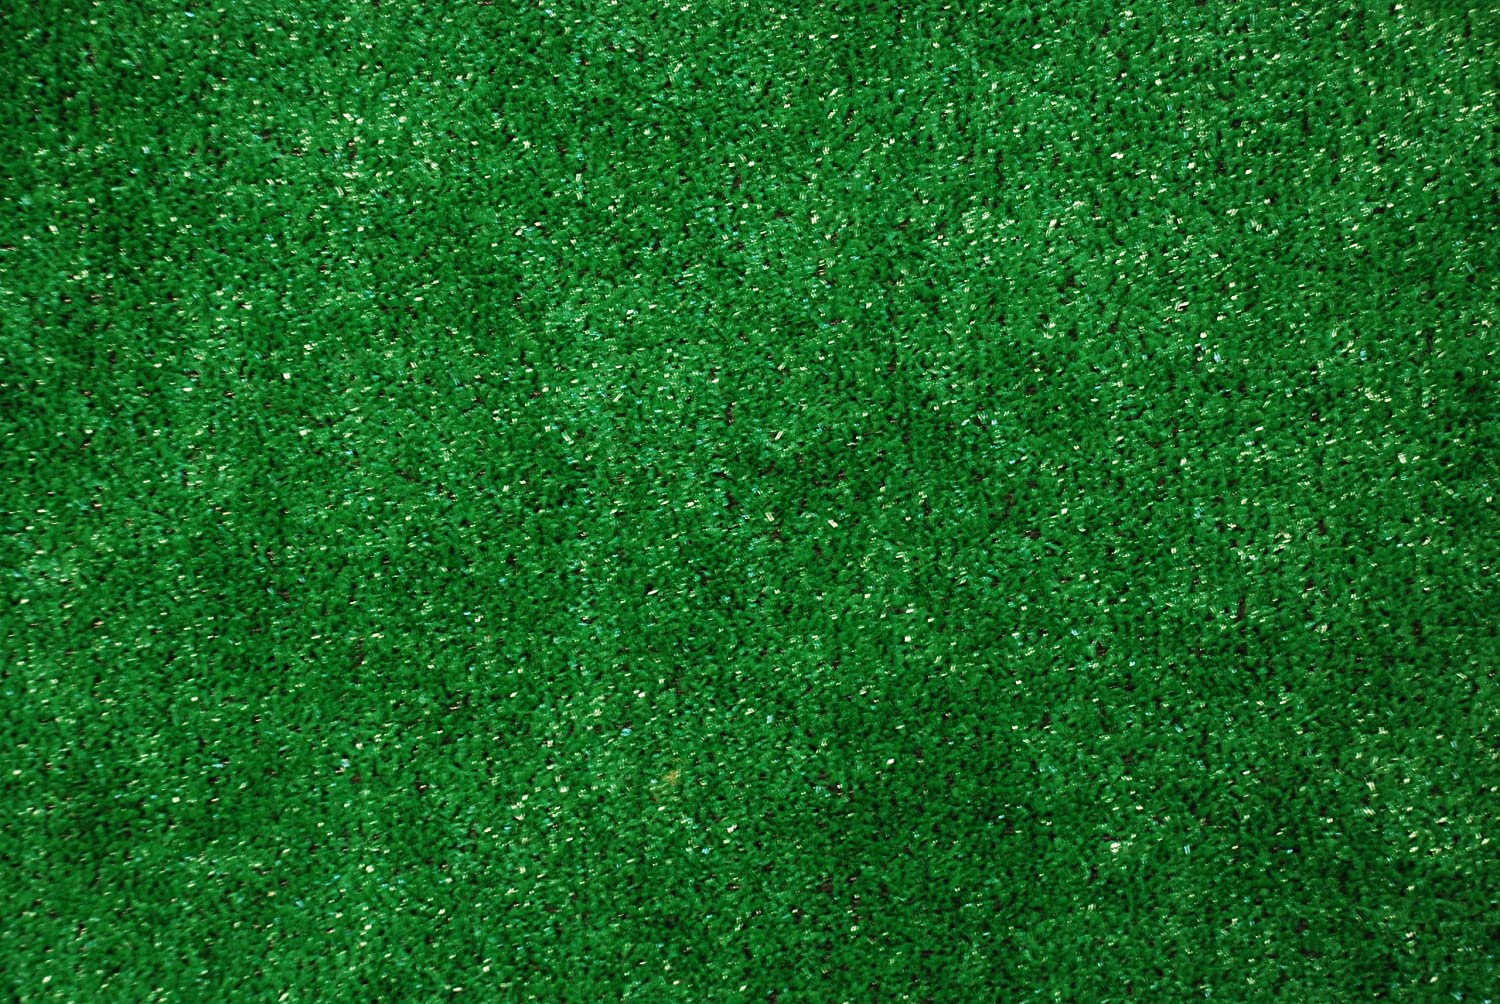 Amazon.com : Indoor/Outdoor Green Artificial Grass Turf Area Rug 6 ...